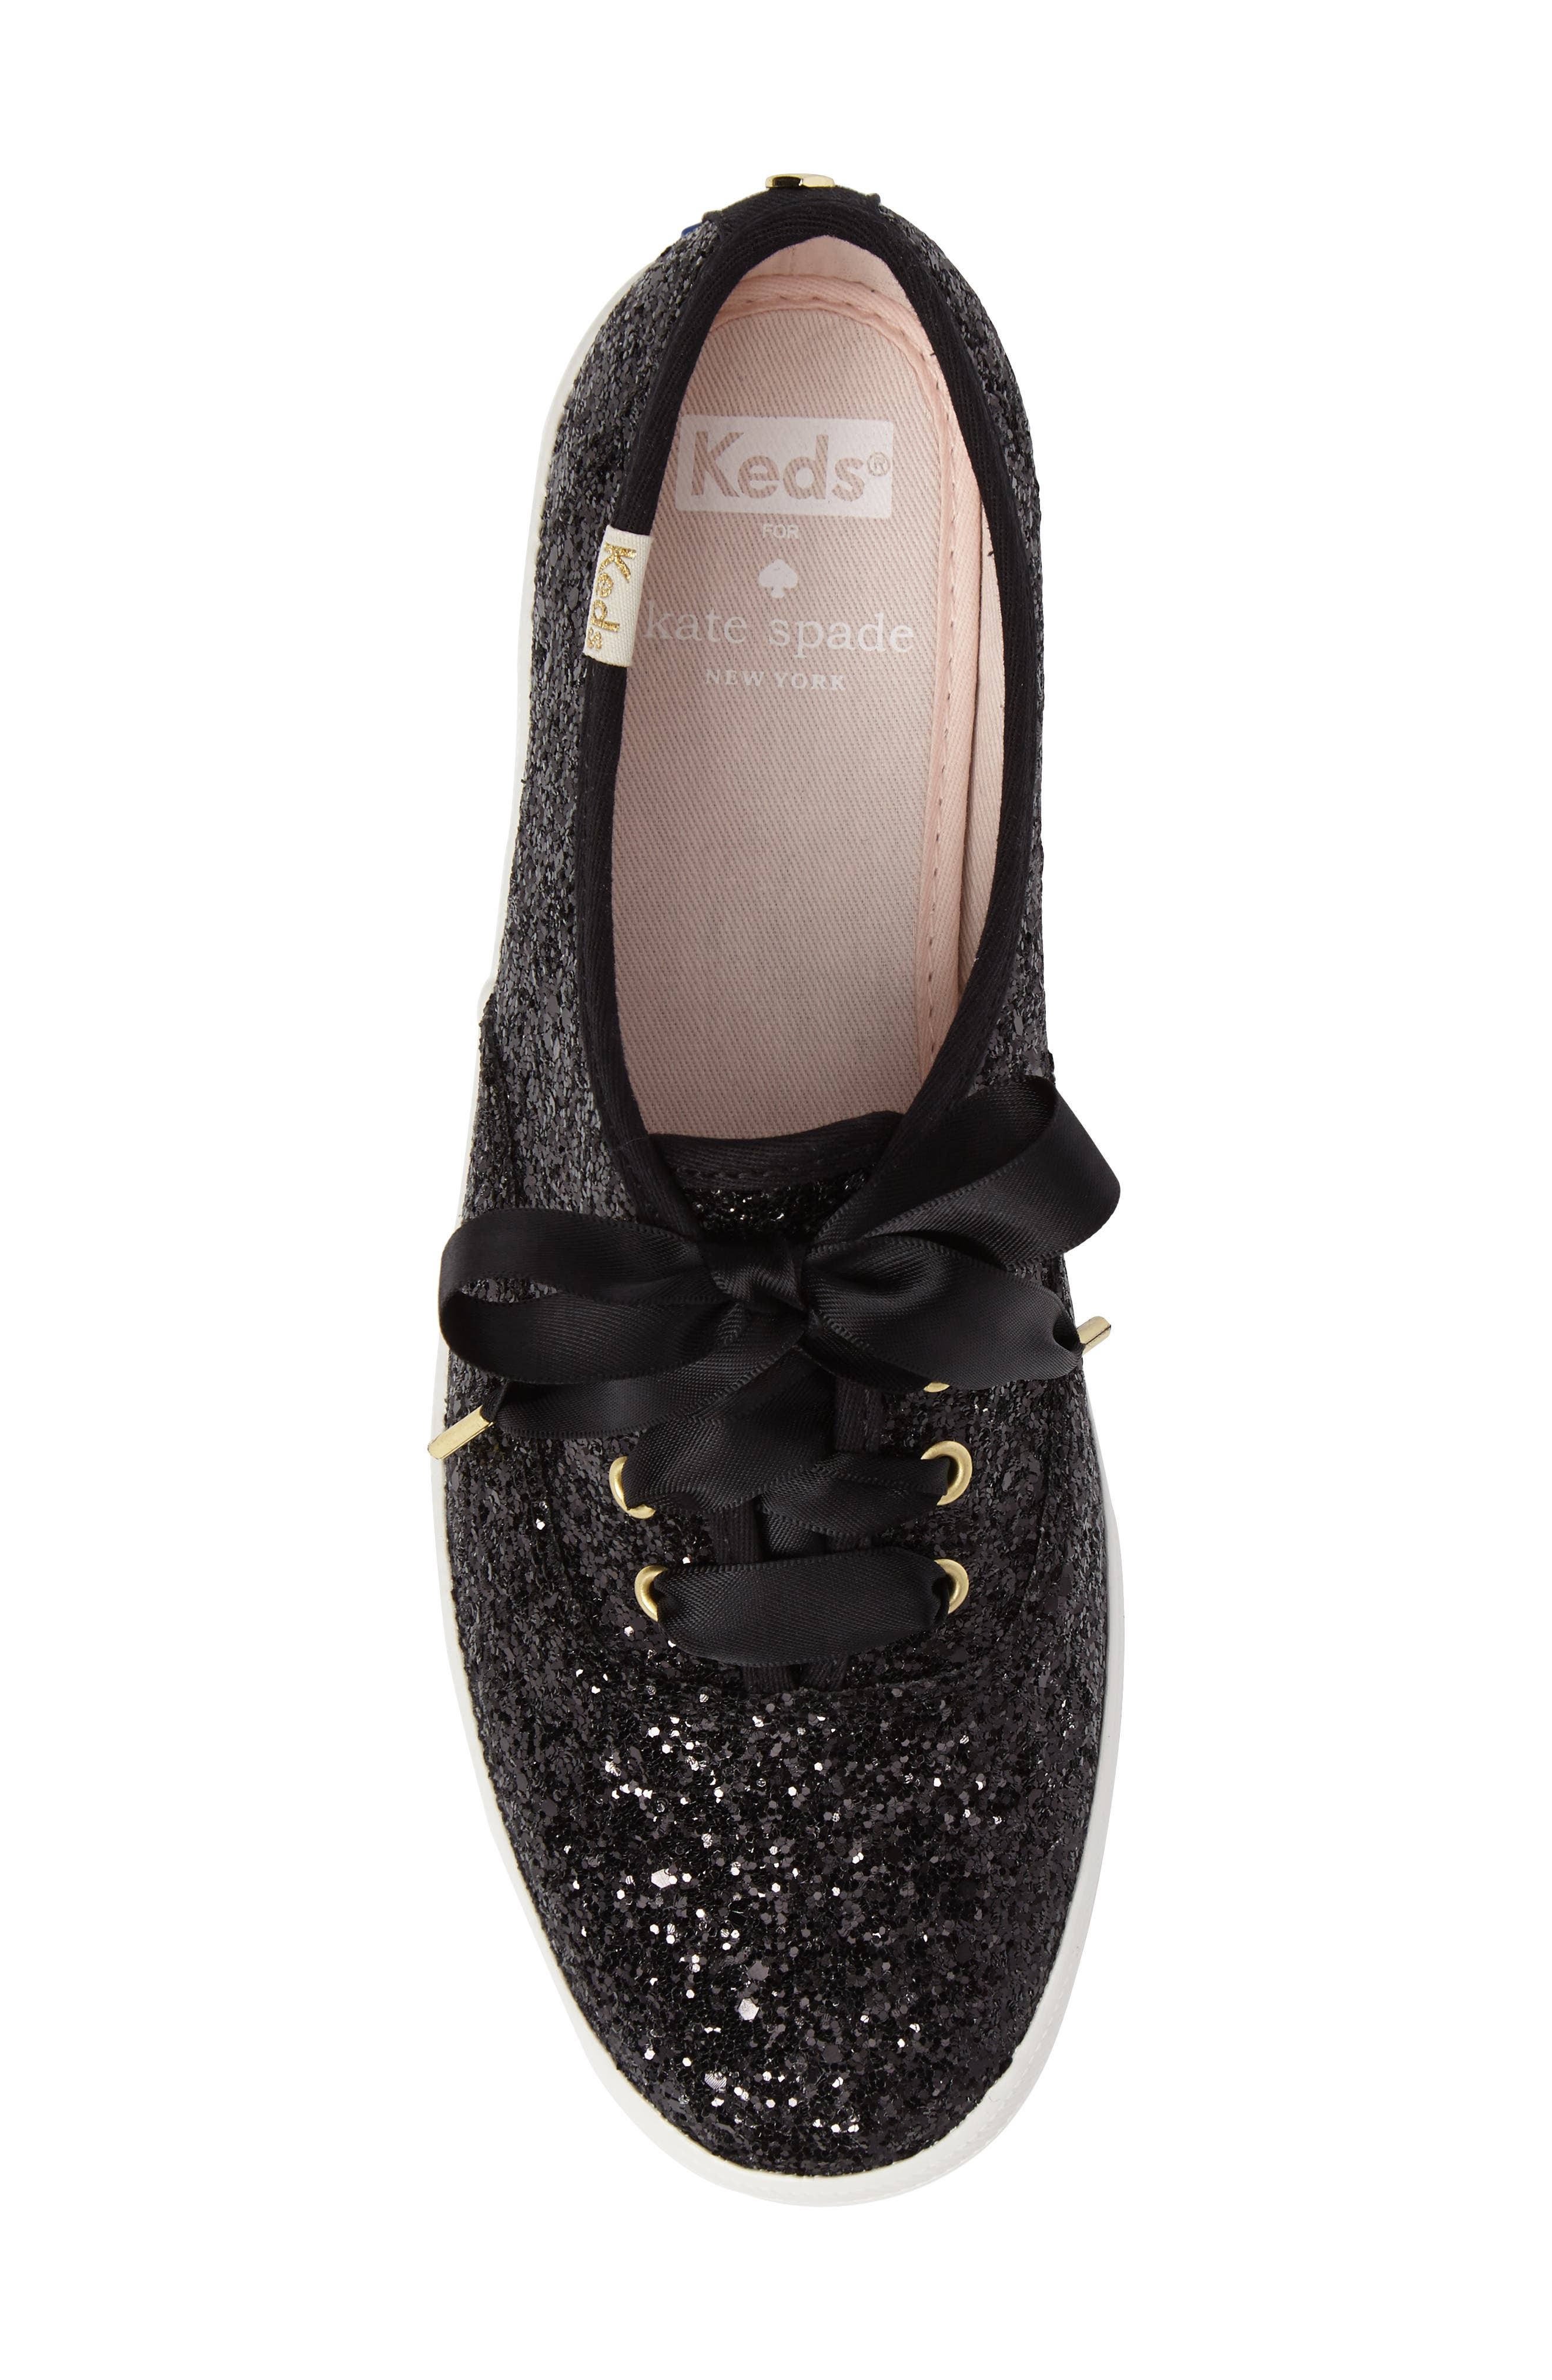 KEDS<SUP>®</SUP> FOR KATE SPADE NEW YORK, glitter sneaker, Alternate thumbnail 5, color, BLACK